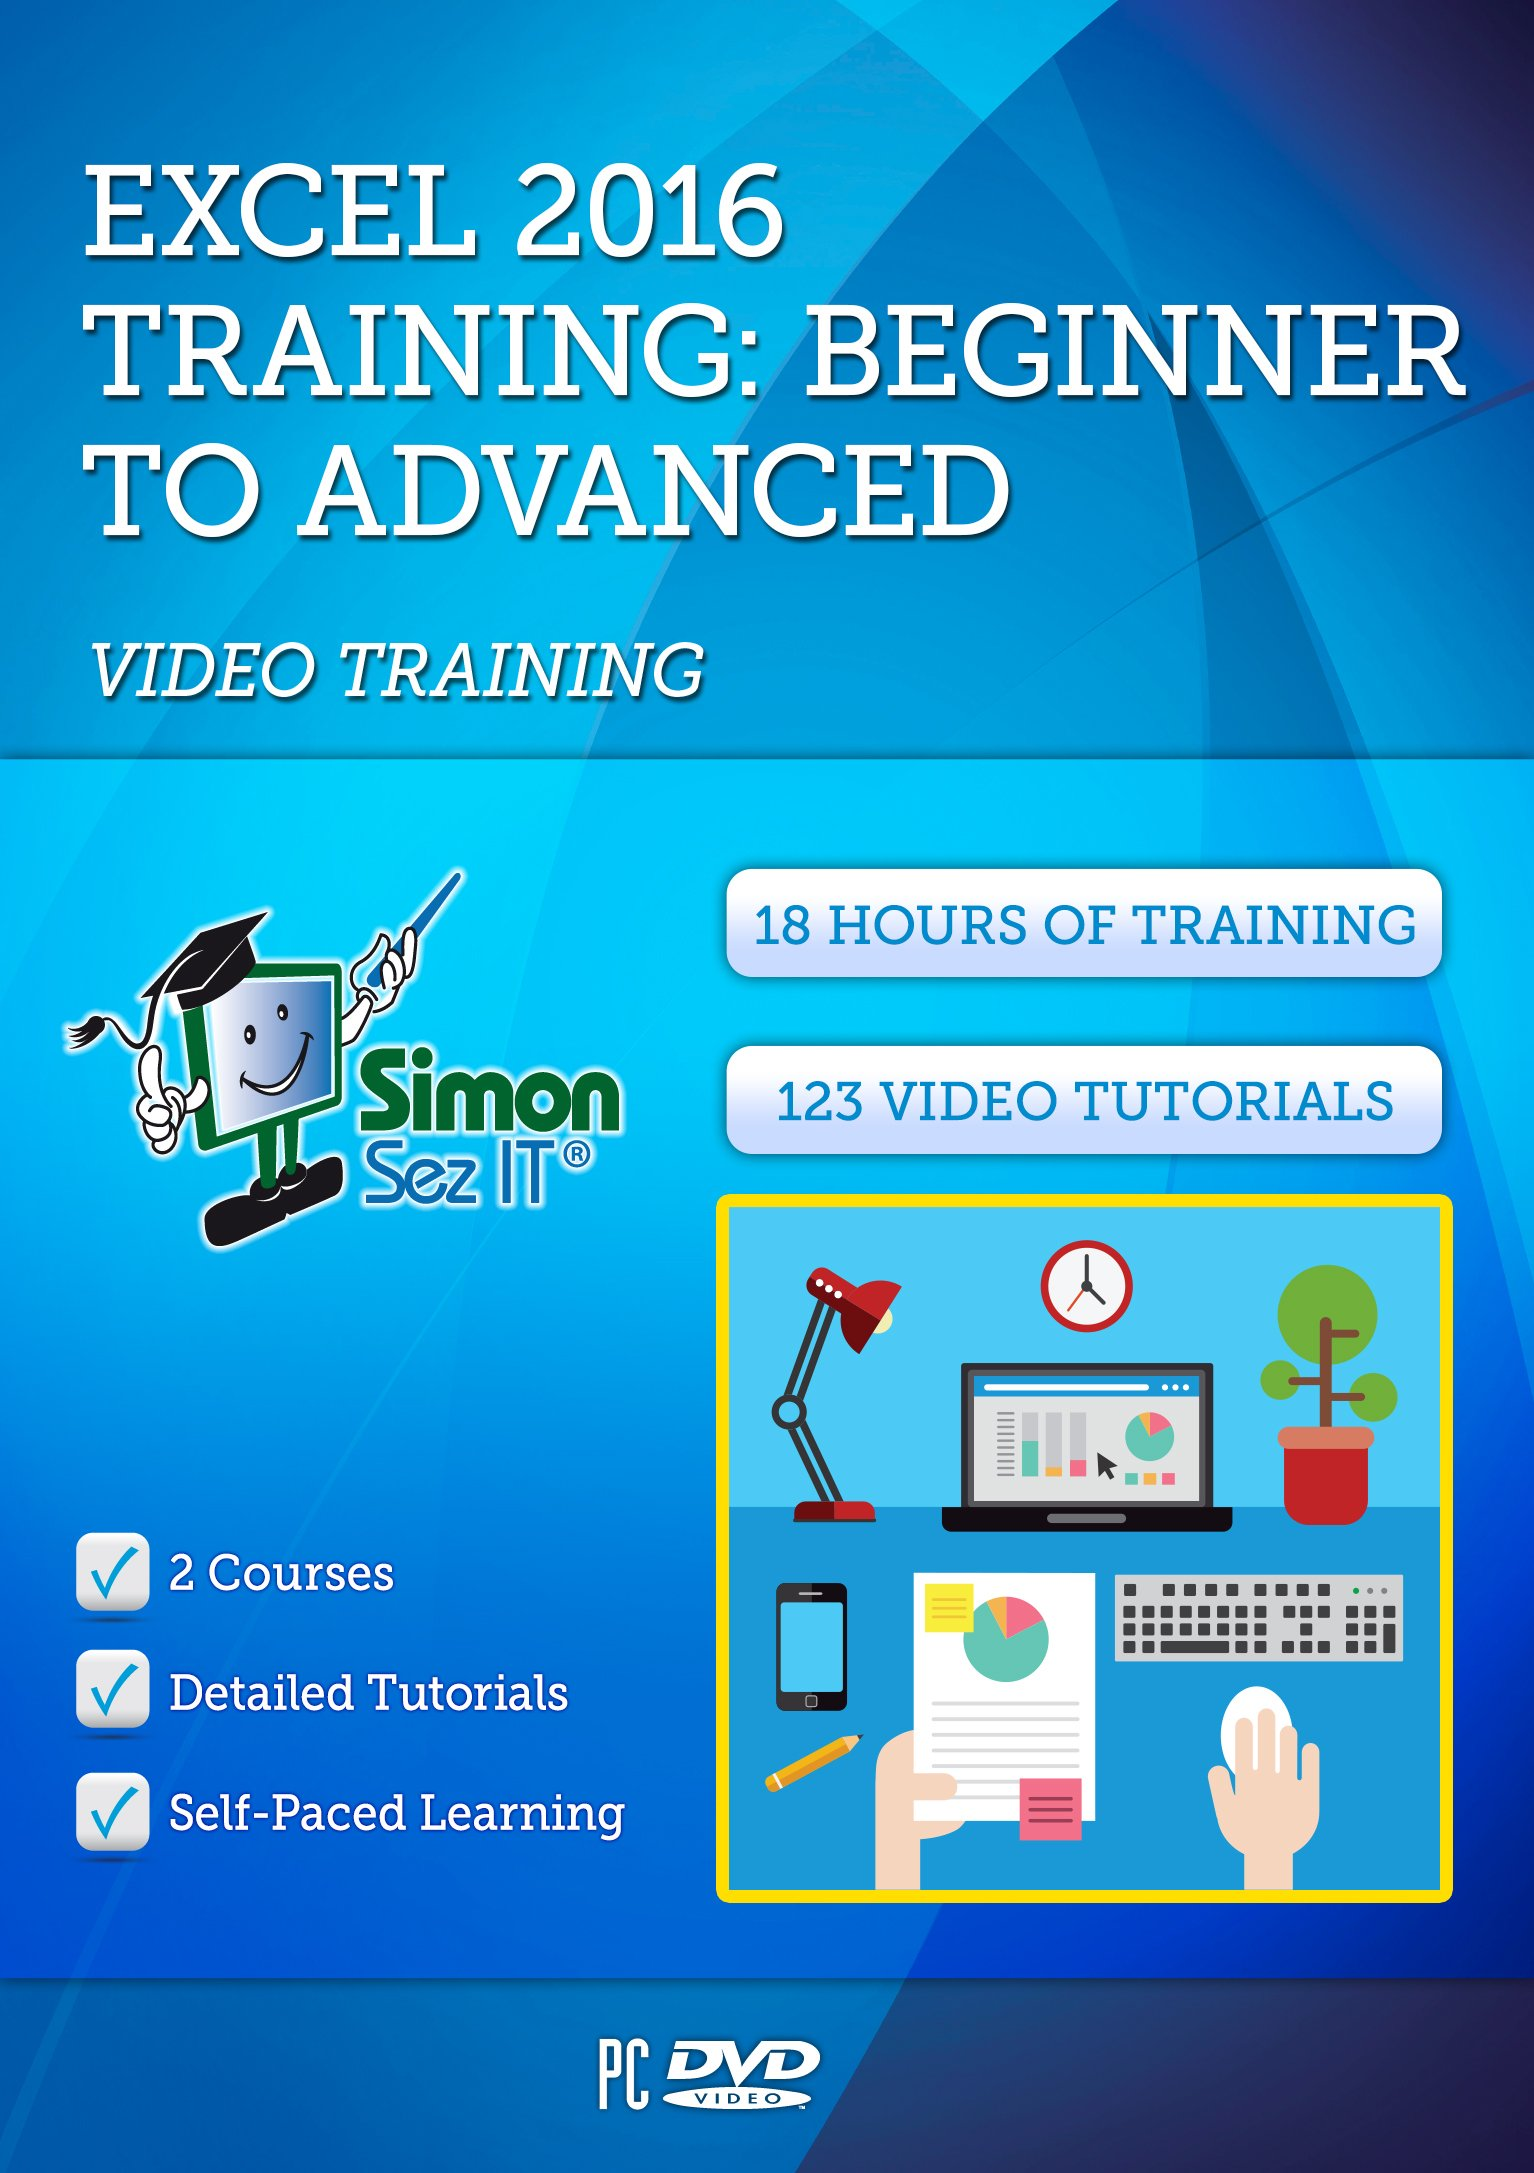 Excel 2016 Training Course by Simon Sez IT: 2 Self-Paced Software Courses For Absolute Beginners - Video Tutorials & Lectures By A Professional Instructor - Exercise Files Included by Simon Sez IT